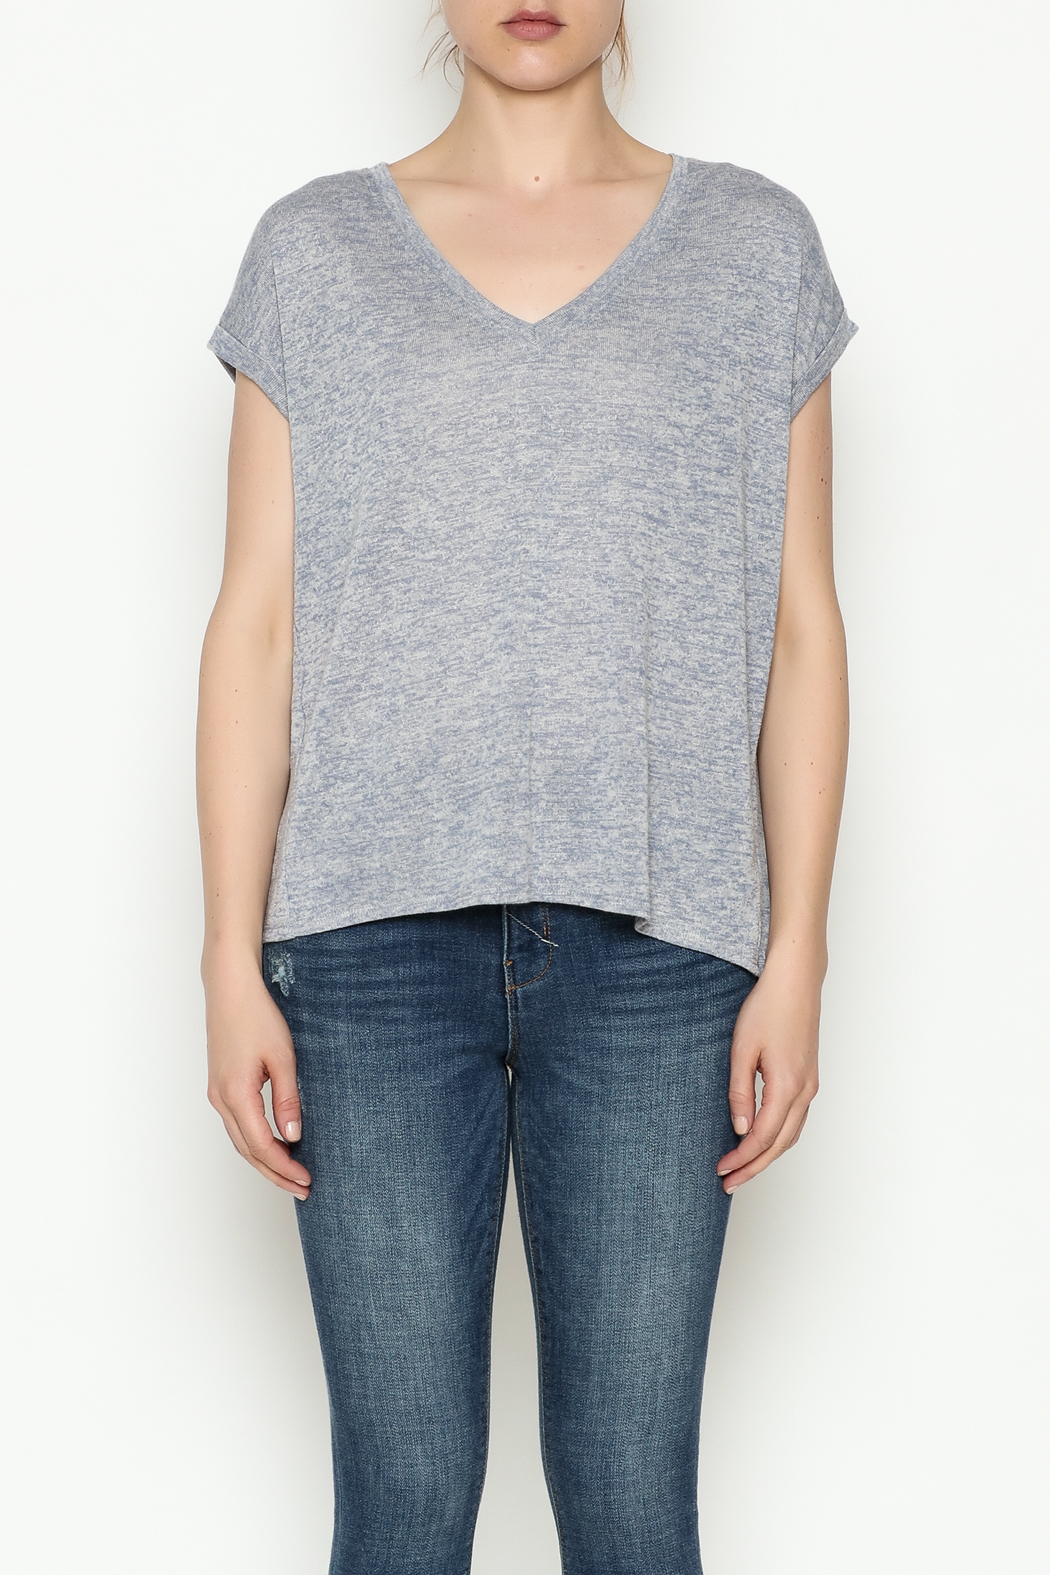 Gentle Fawn Boyfriend V Neck Tee - Front Full Image